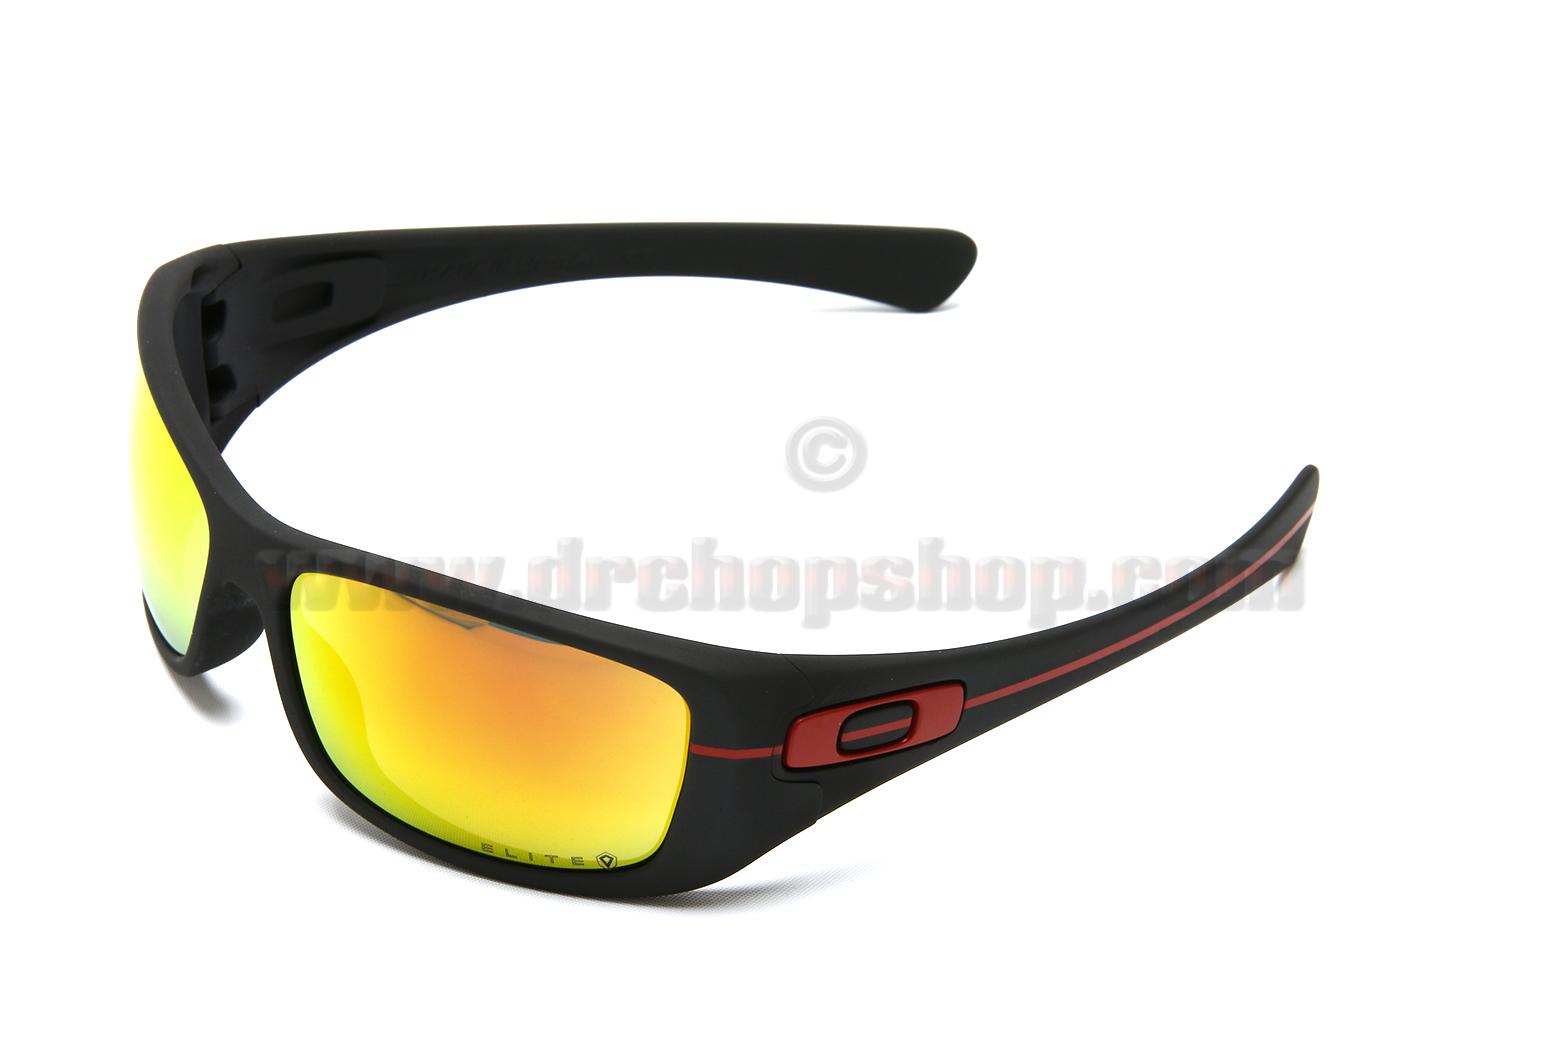 d8a0ad4b8b Thin Red Line Oakley Hijinx Revant Optics Elite Fire Red Polarized Lenses